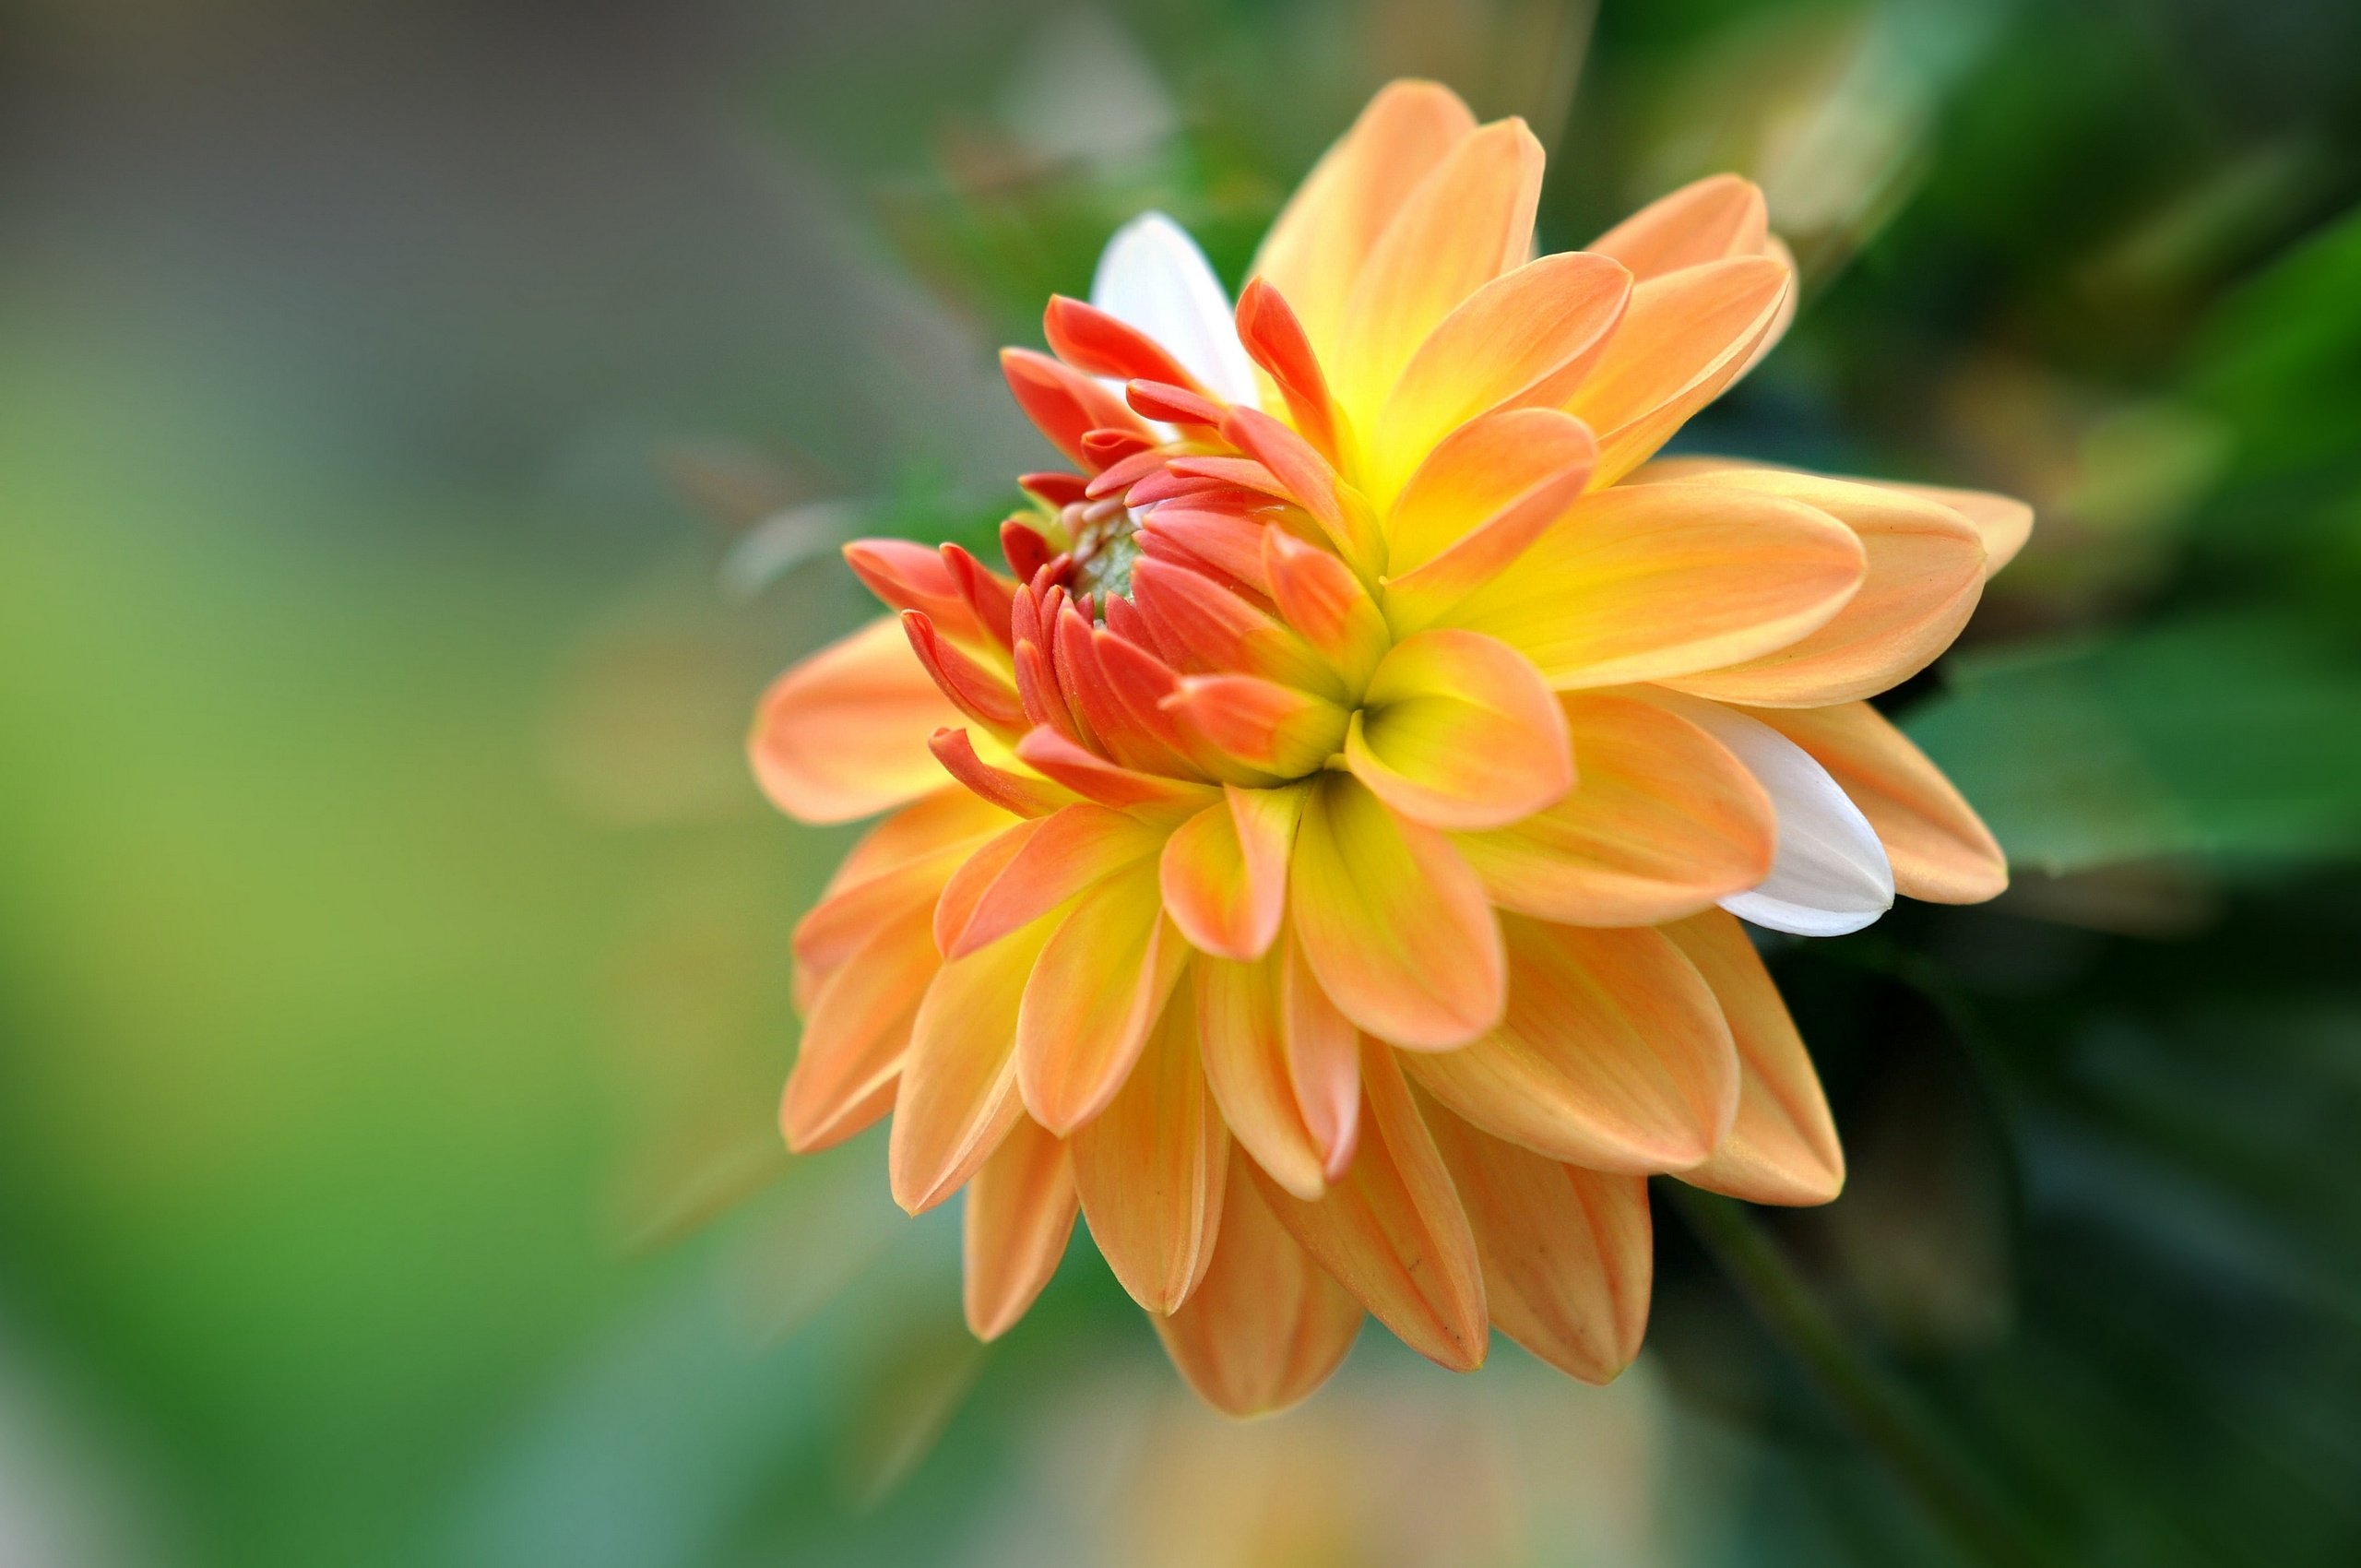 Fall Chevron Wallpaper Dahlia Close Up Bokeh Wallpaper 2560x1700 162725